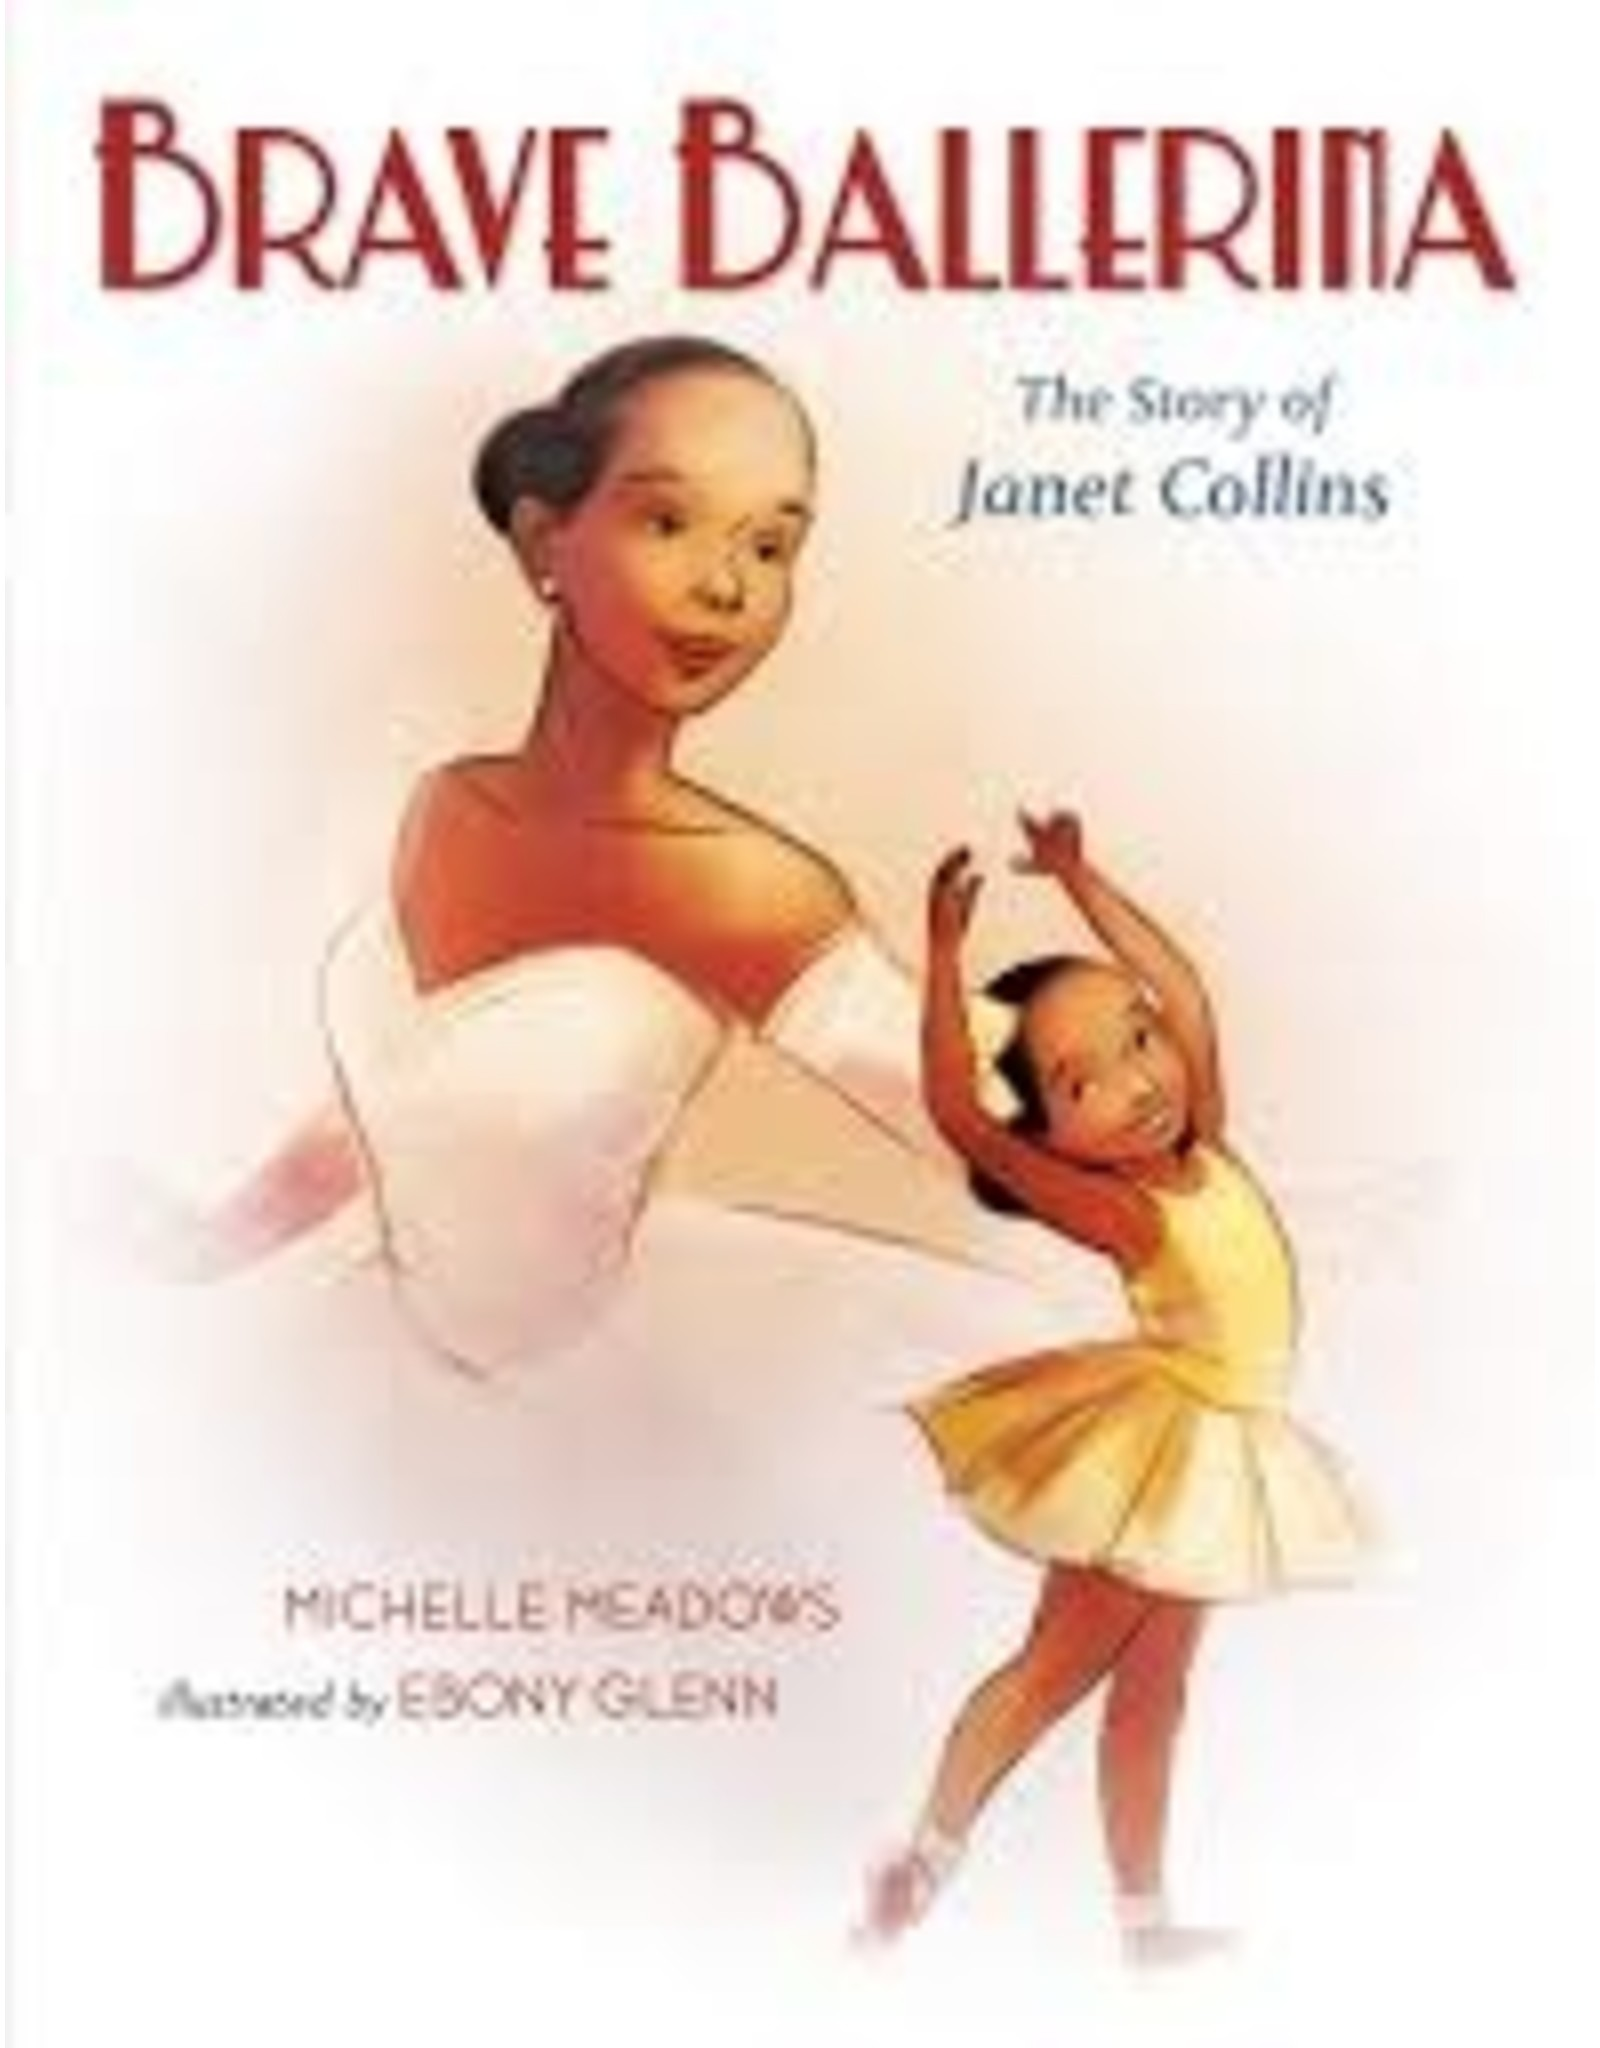 Books Brave Ballerina : The Story of Janet Collins by Michelle Meadows